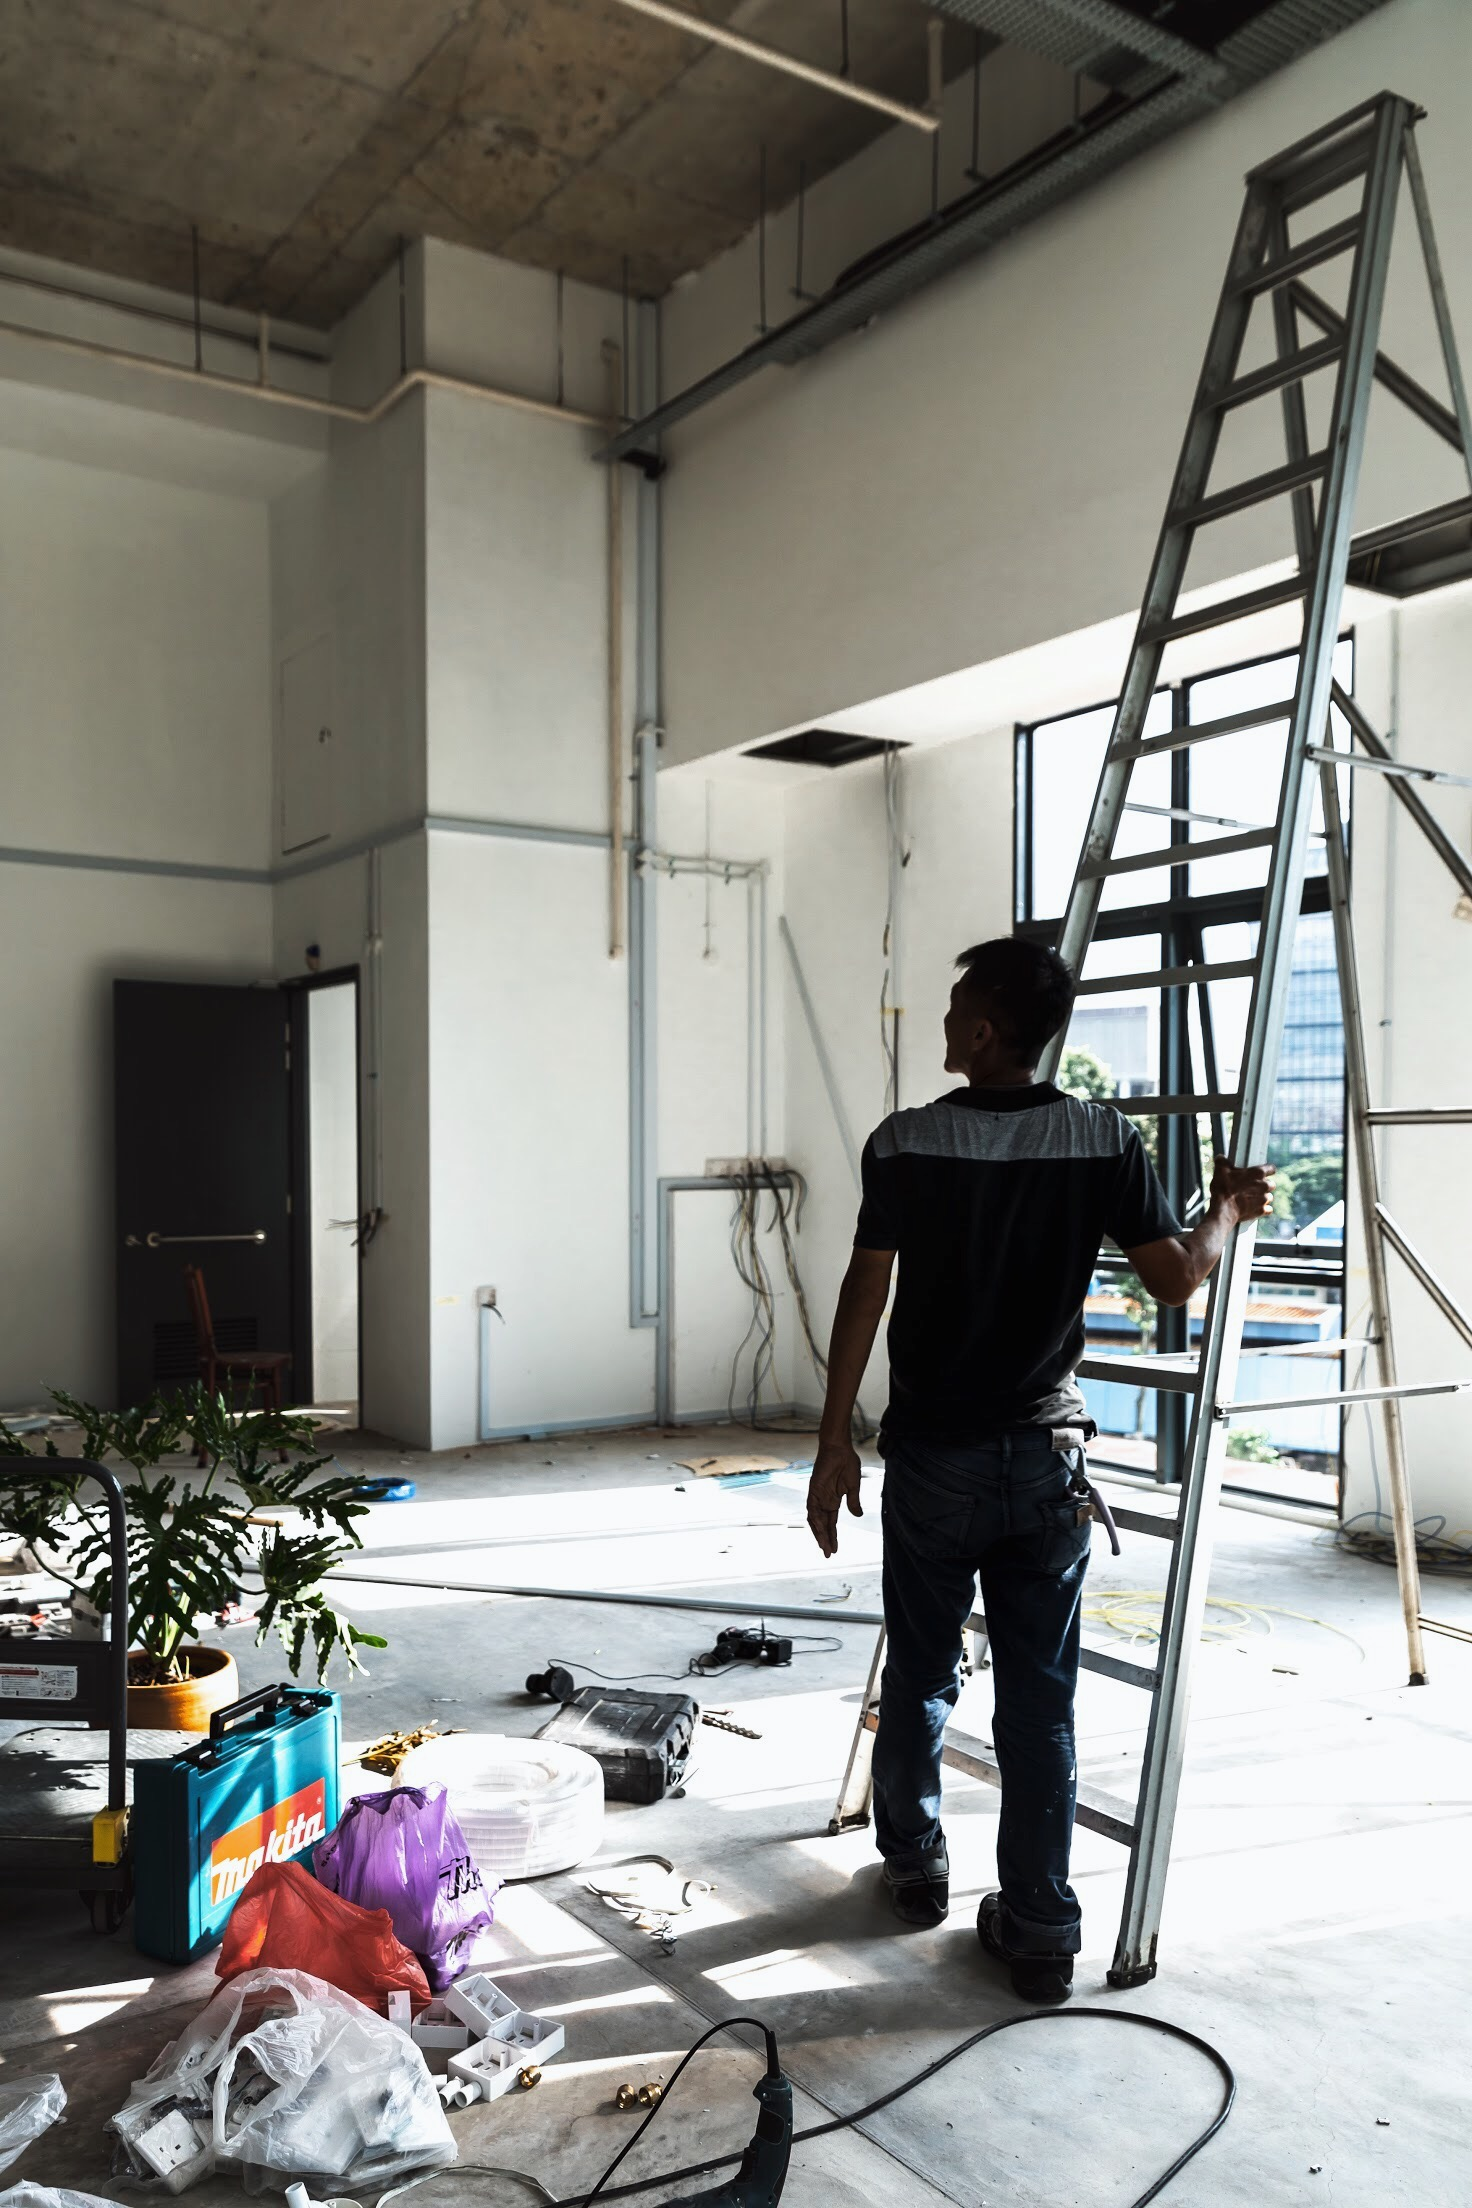 Renovation works at our studio